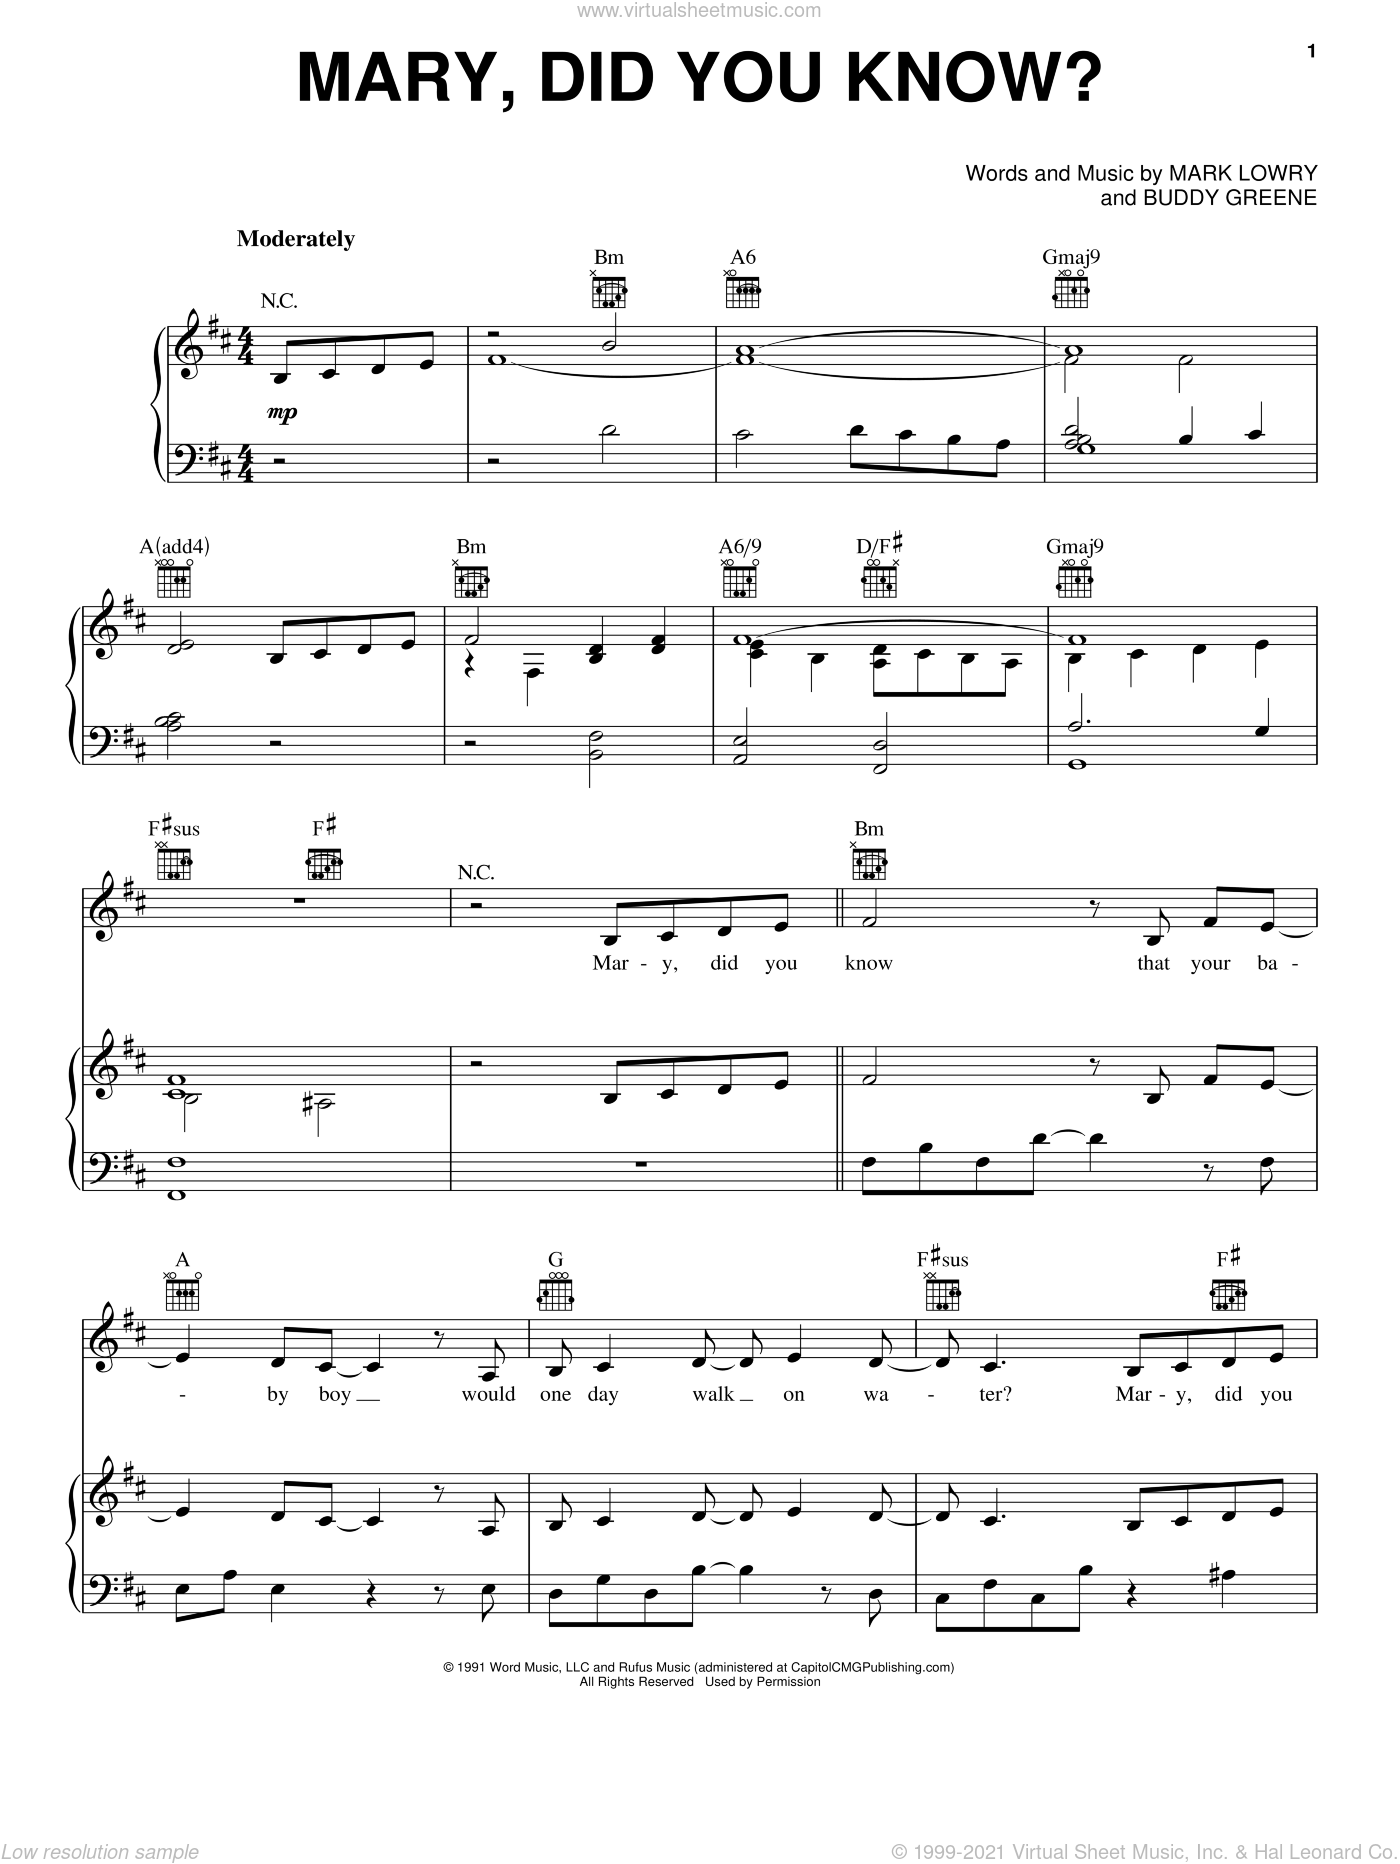 Mary, Did You Know? sheet music for voice, piano or guitar by Pentatonix, Kathy Mattea, Buddy Greene and Mark Lowry, intermediate skill level